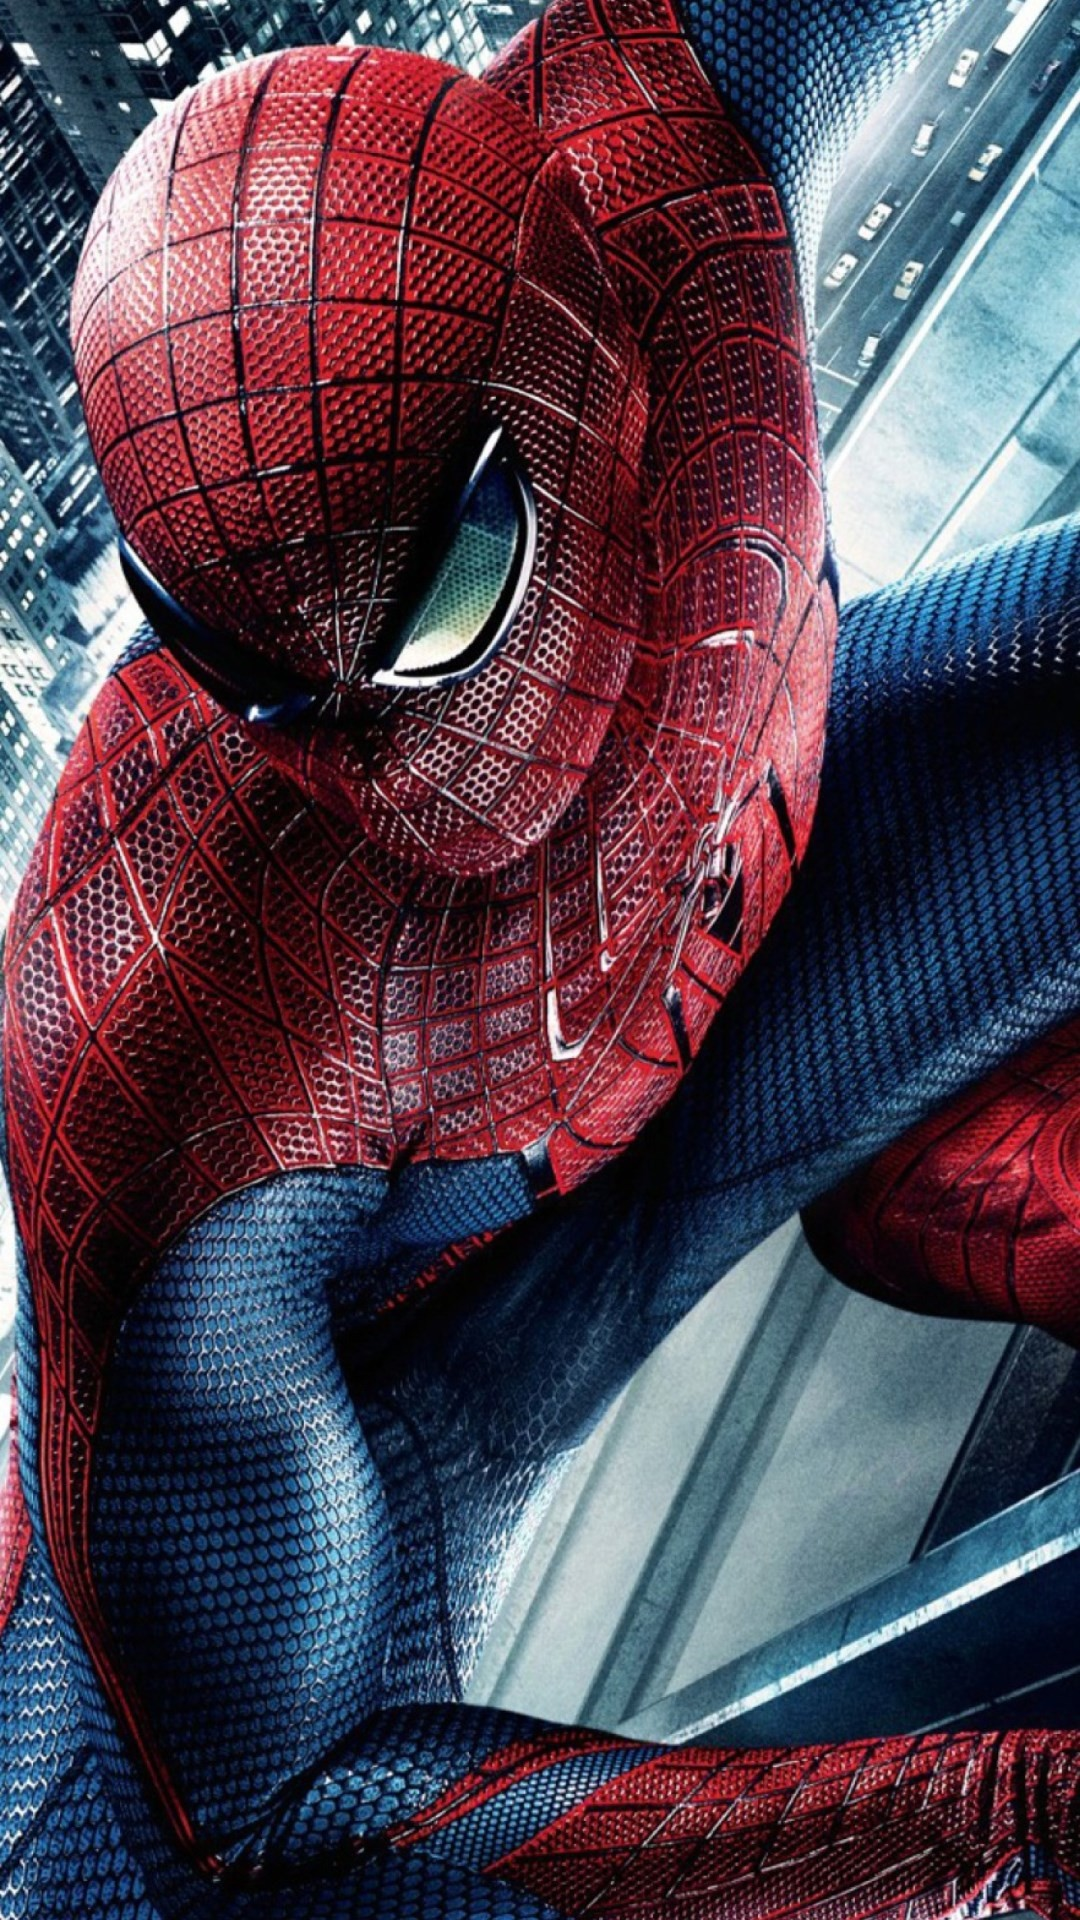 spiderman wallpaper for iphone download free